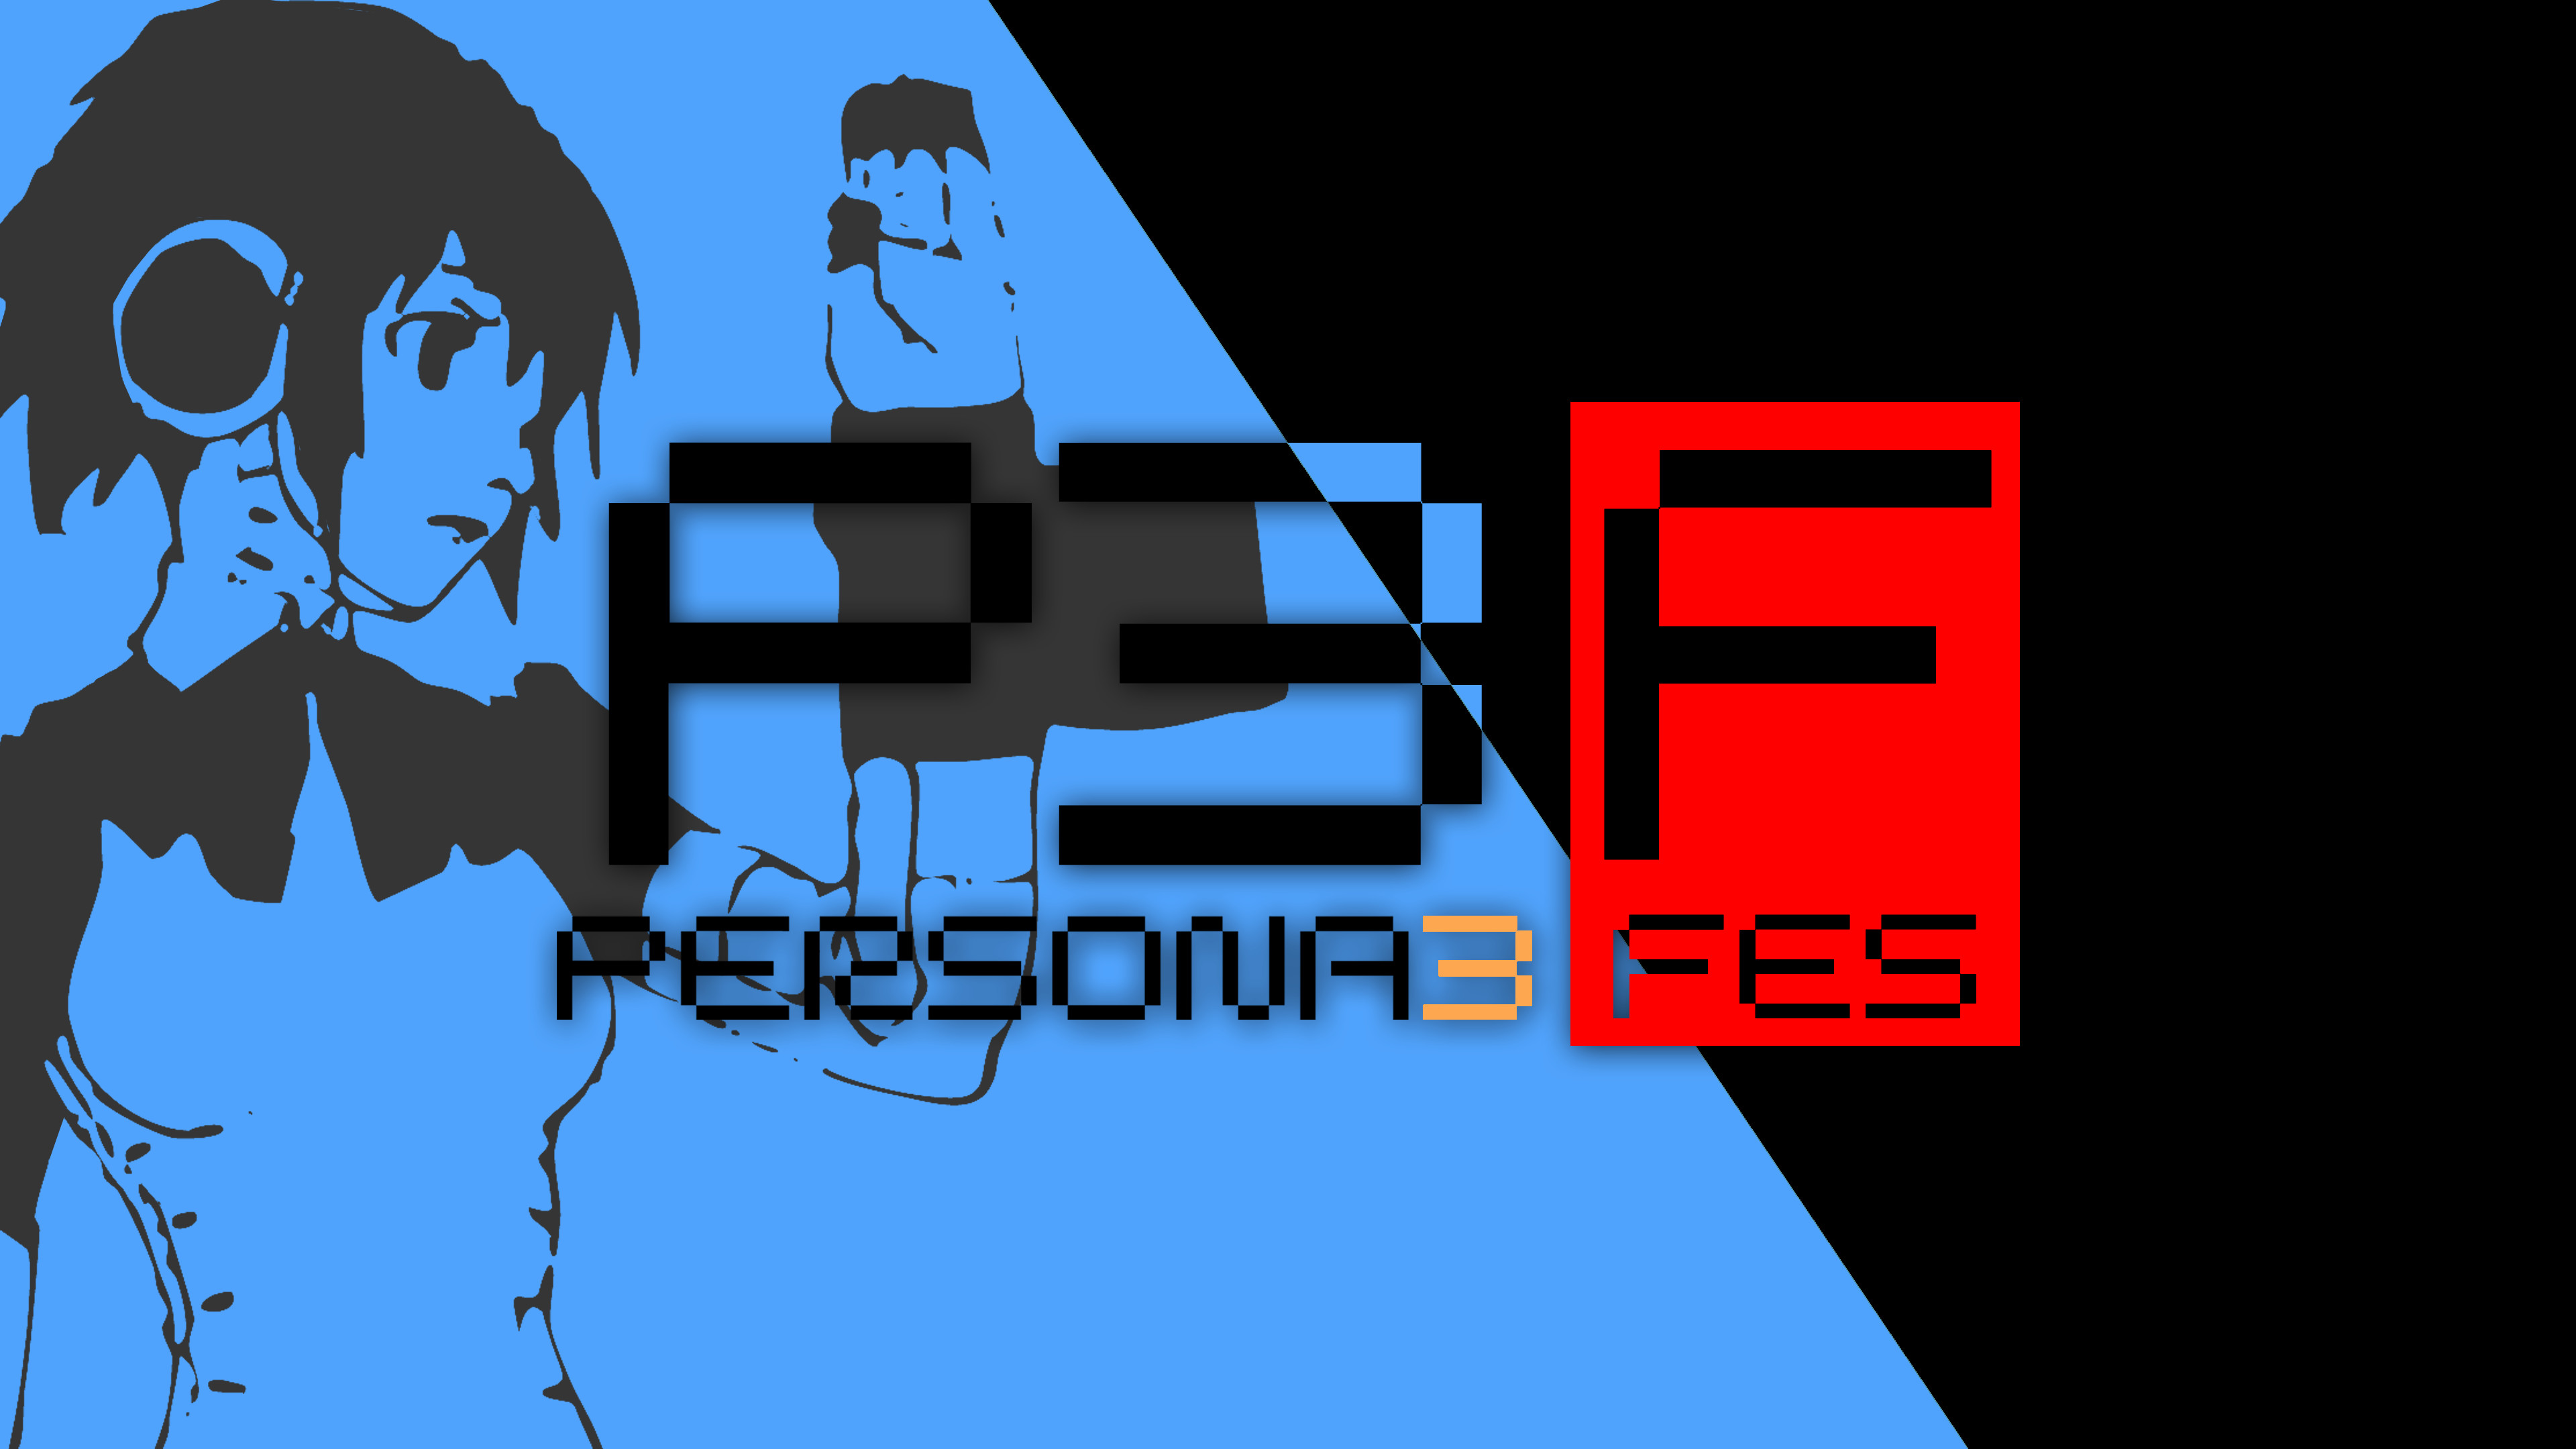 3840x2160 wallpaper.wiki-HD-Persona-3-Fes-Photos-PIC-